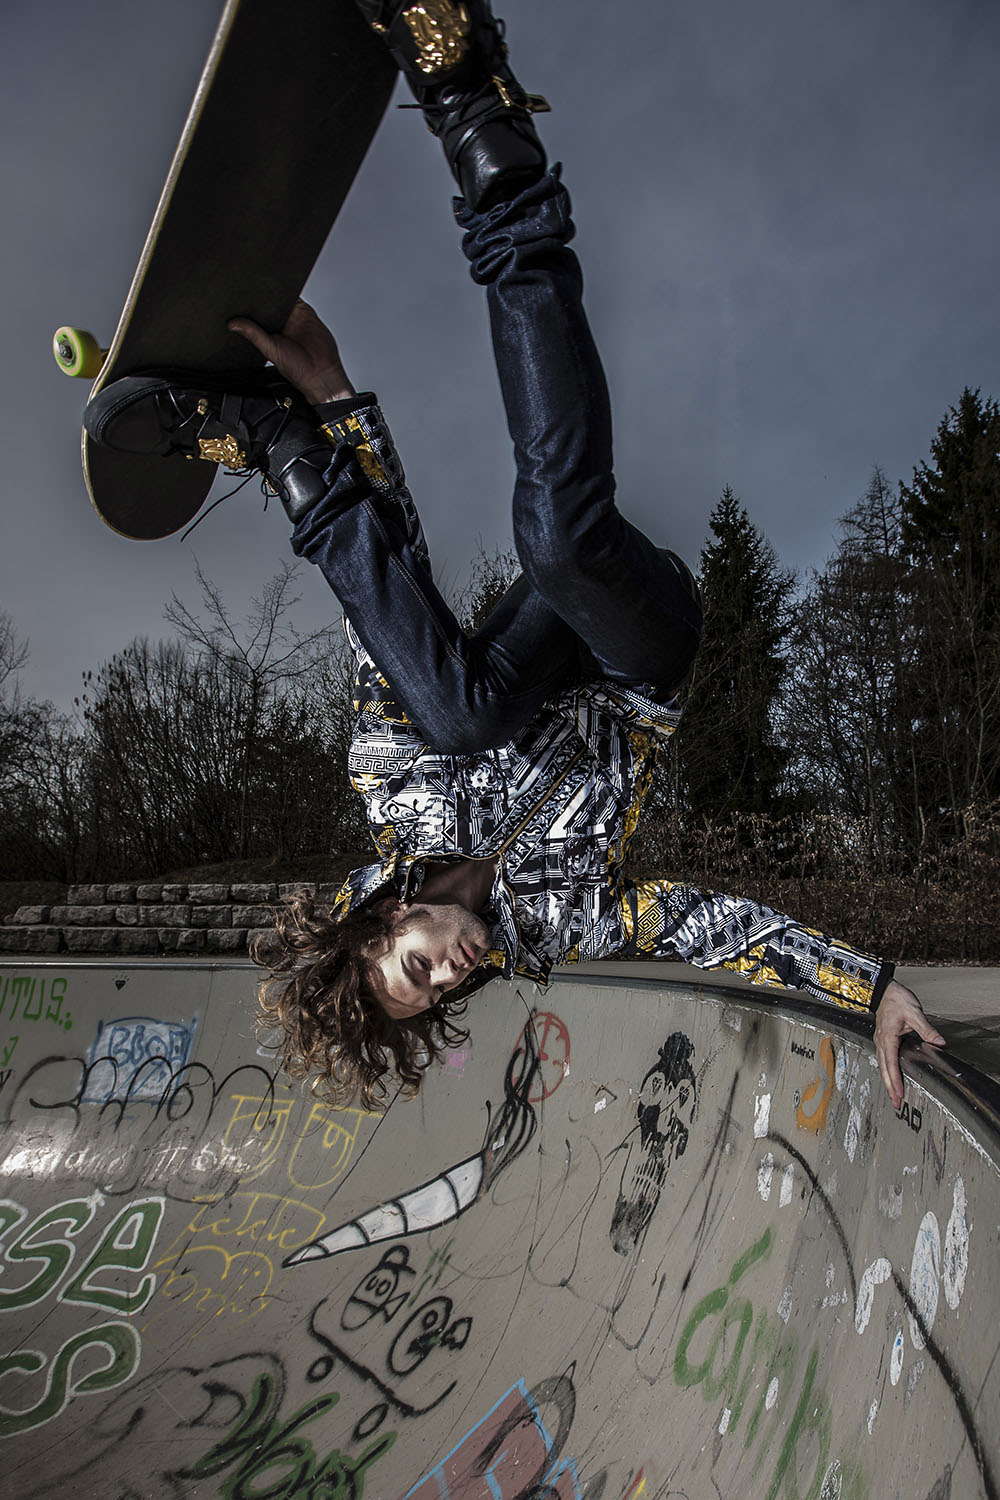 TomCat_Skate_Kleinhans_Model_03 Tom Cat Kleinhans Male Model Munich München Skater Bad Tölz Lenggries New York tomcatskate.com.jpg